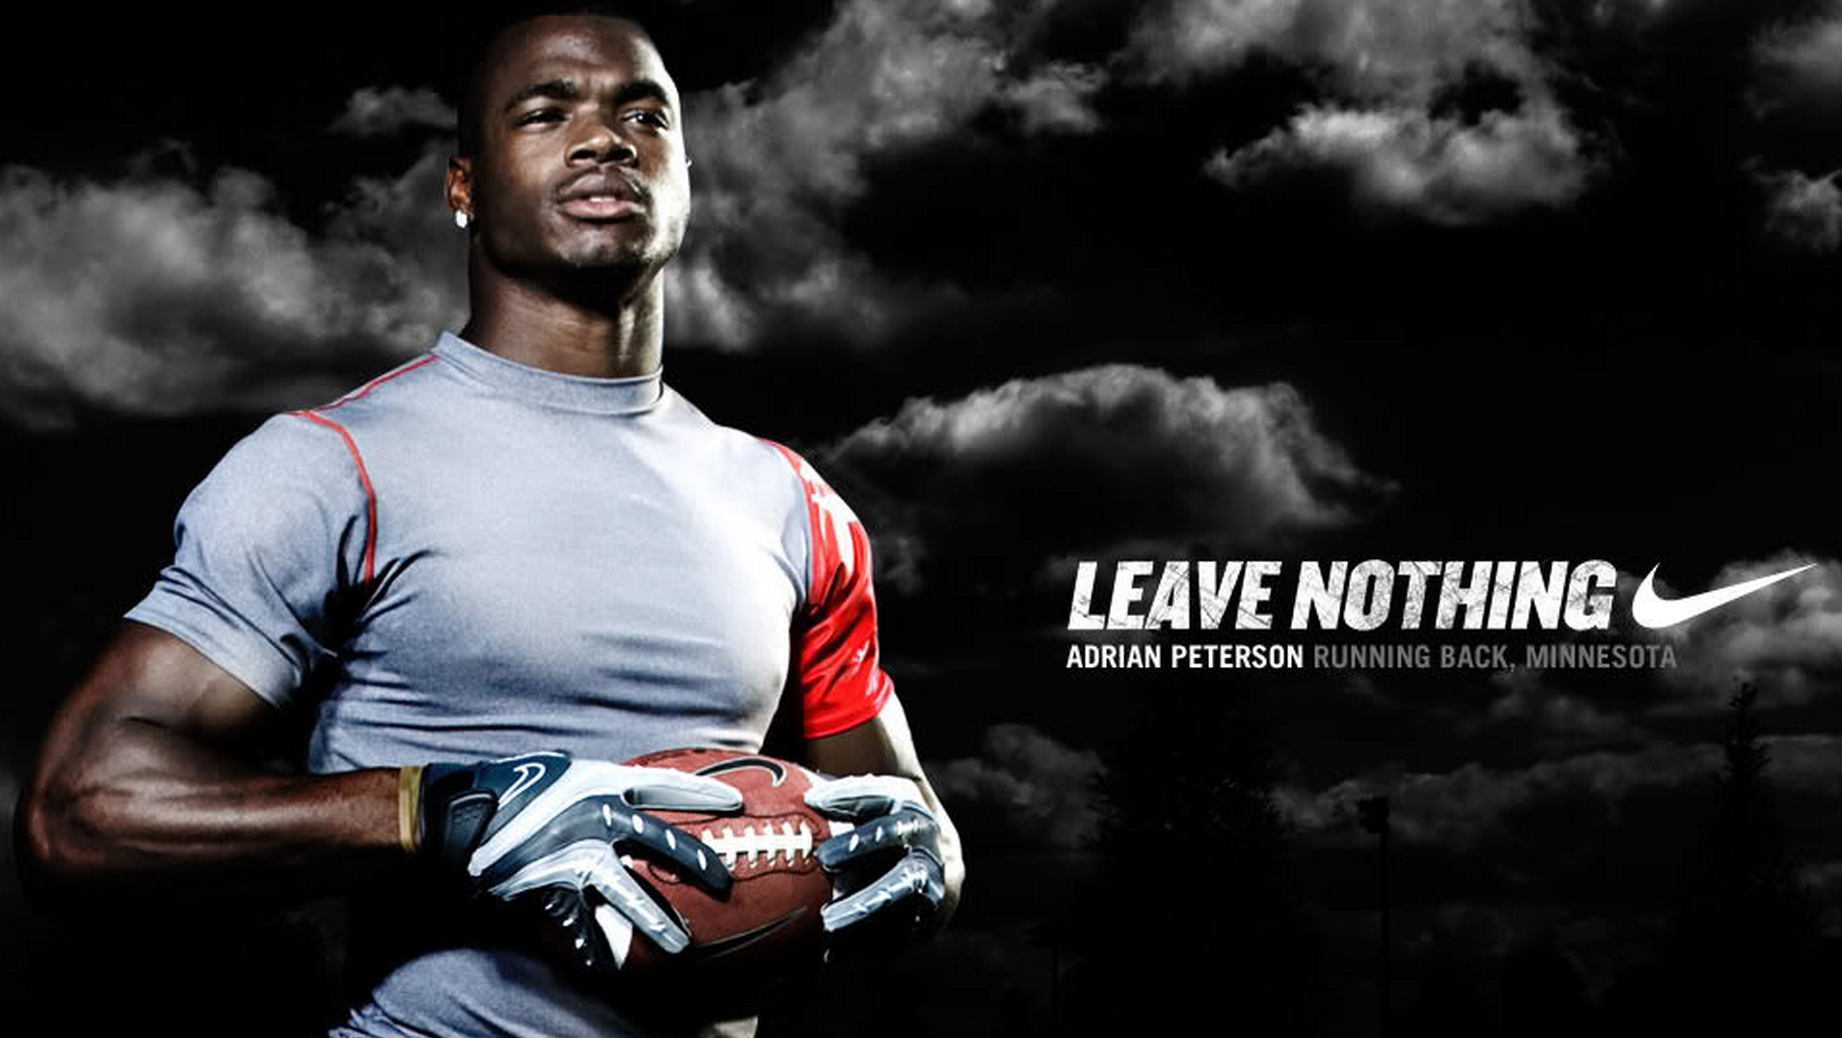 Nike Doesn't Want To Be Associated With Adrian Peterson Right Now